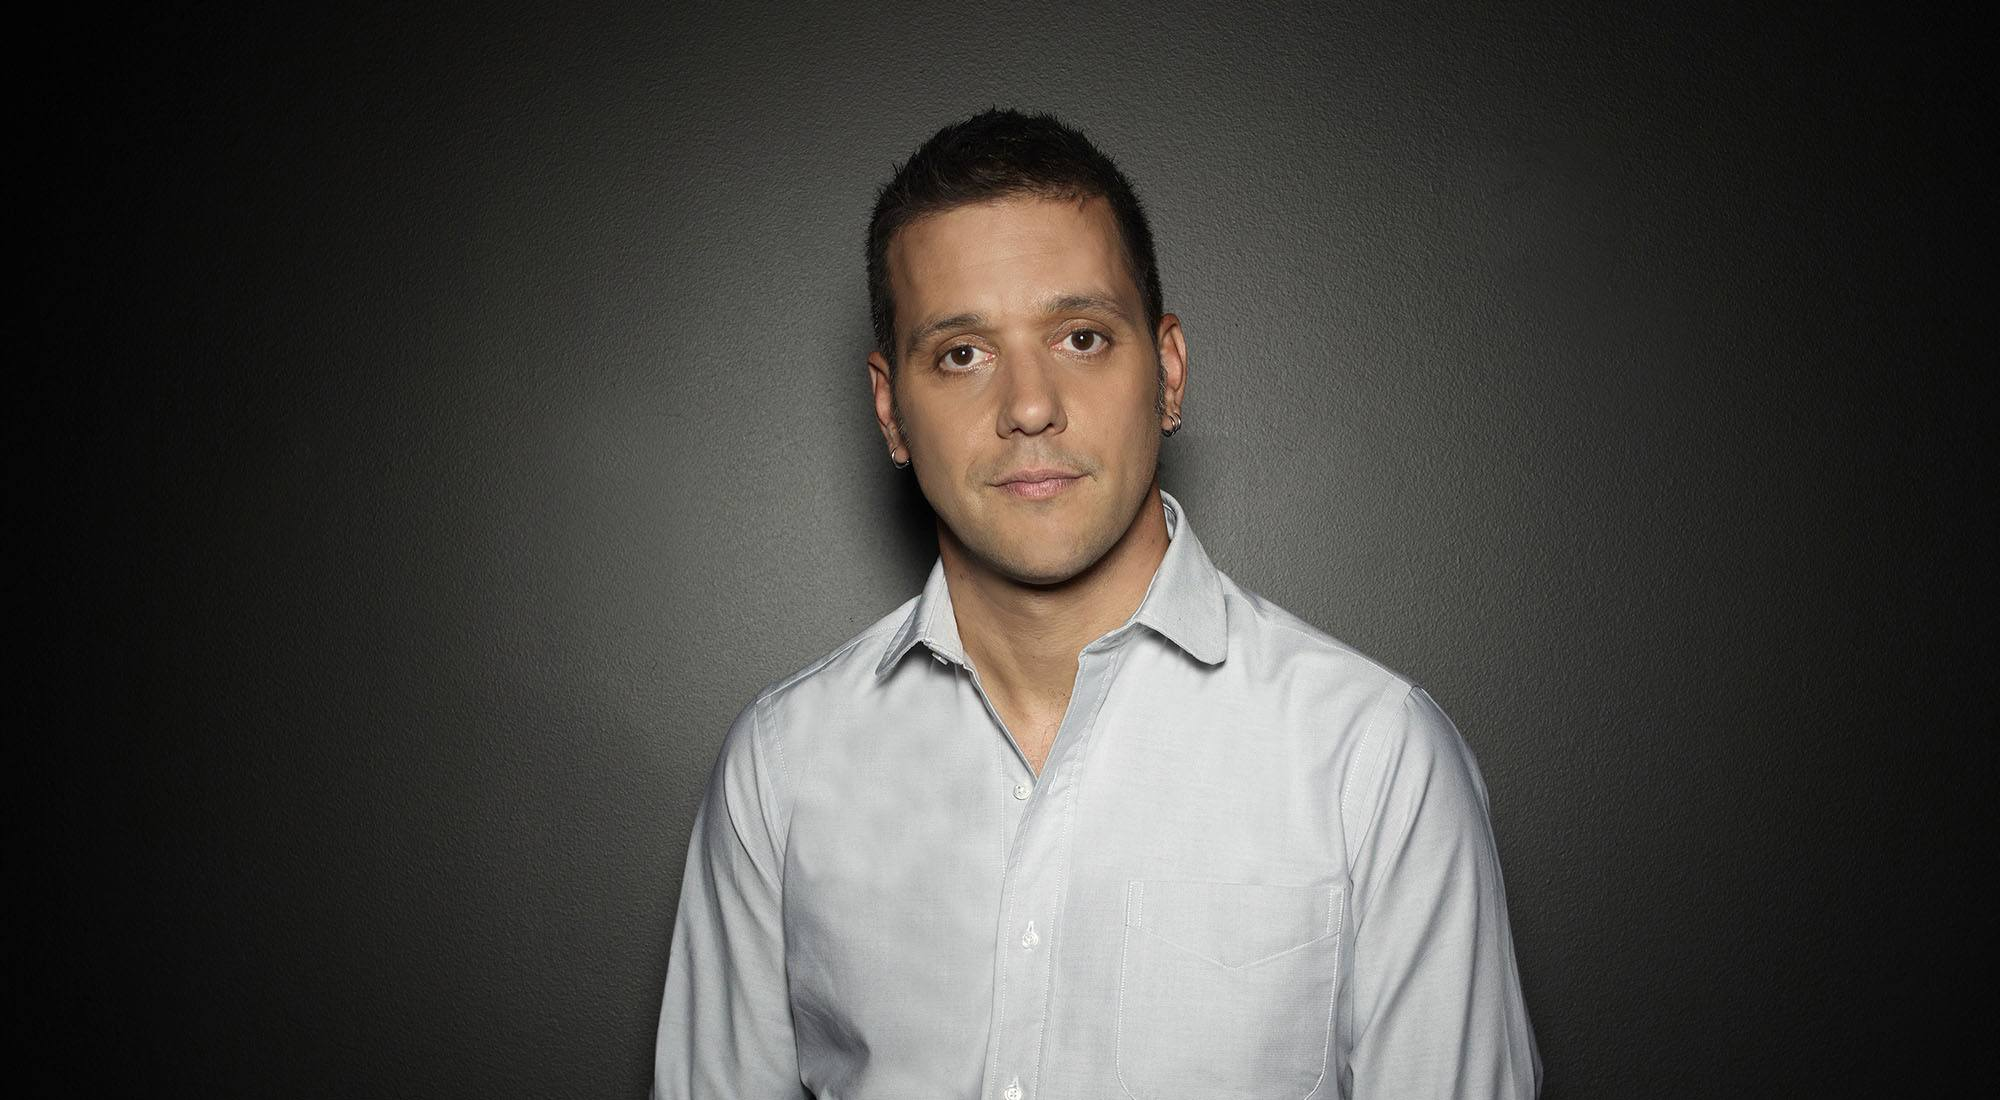 Man found murdered inside George Stroumboulopoulos's LA home